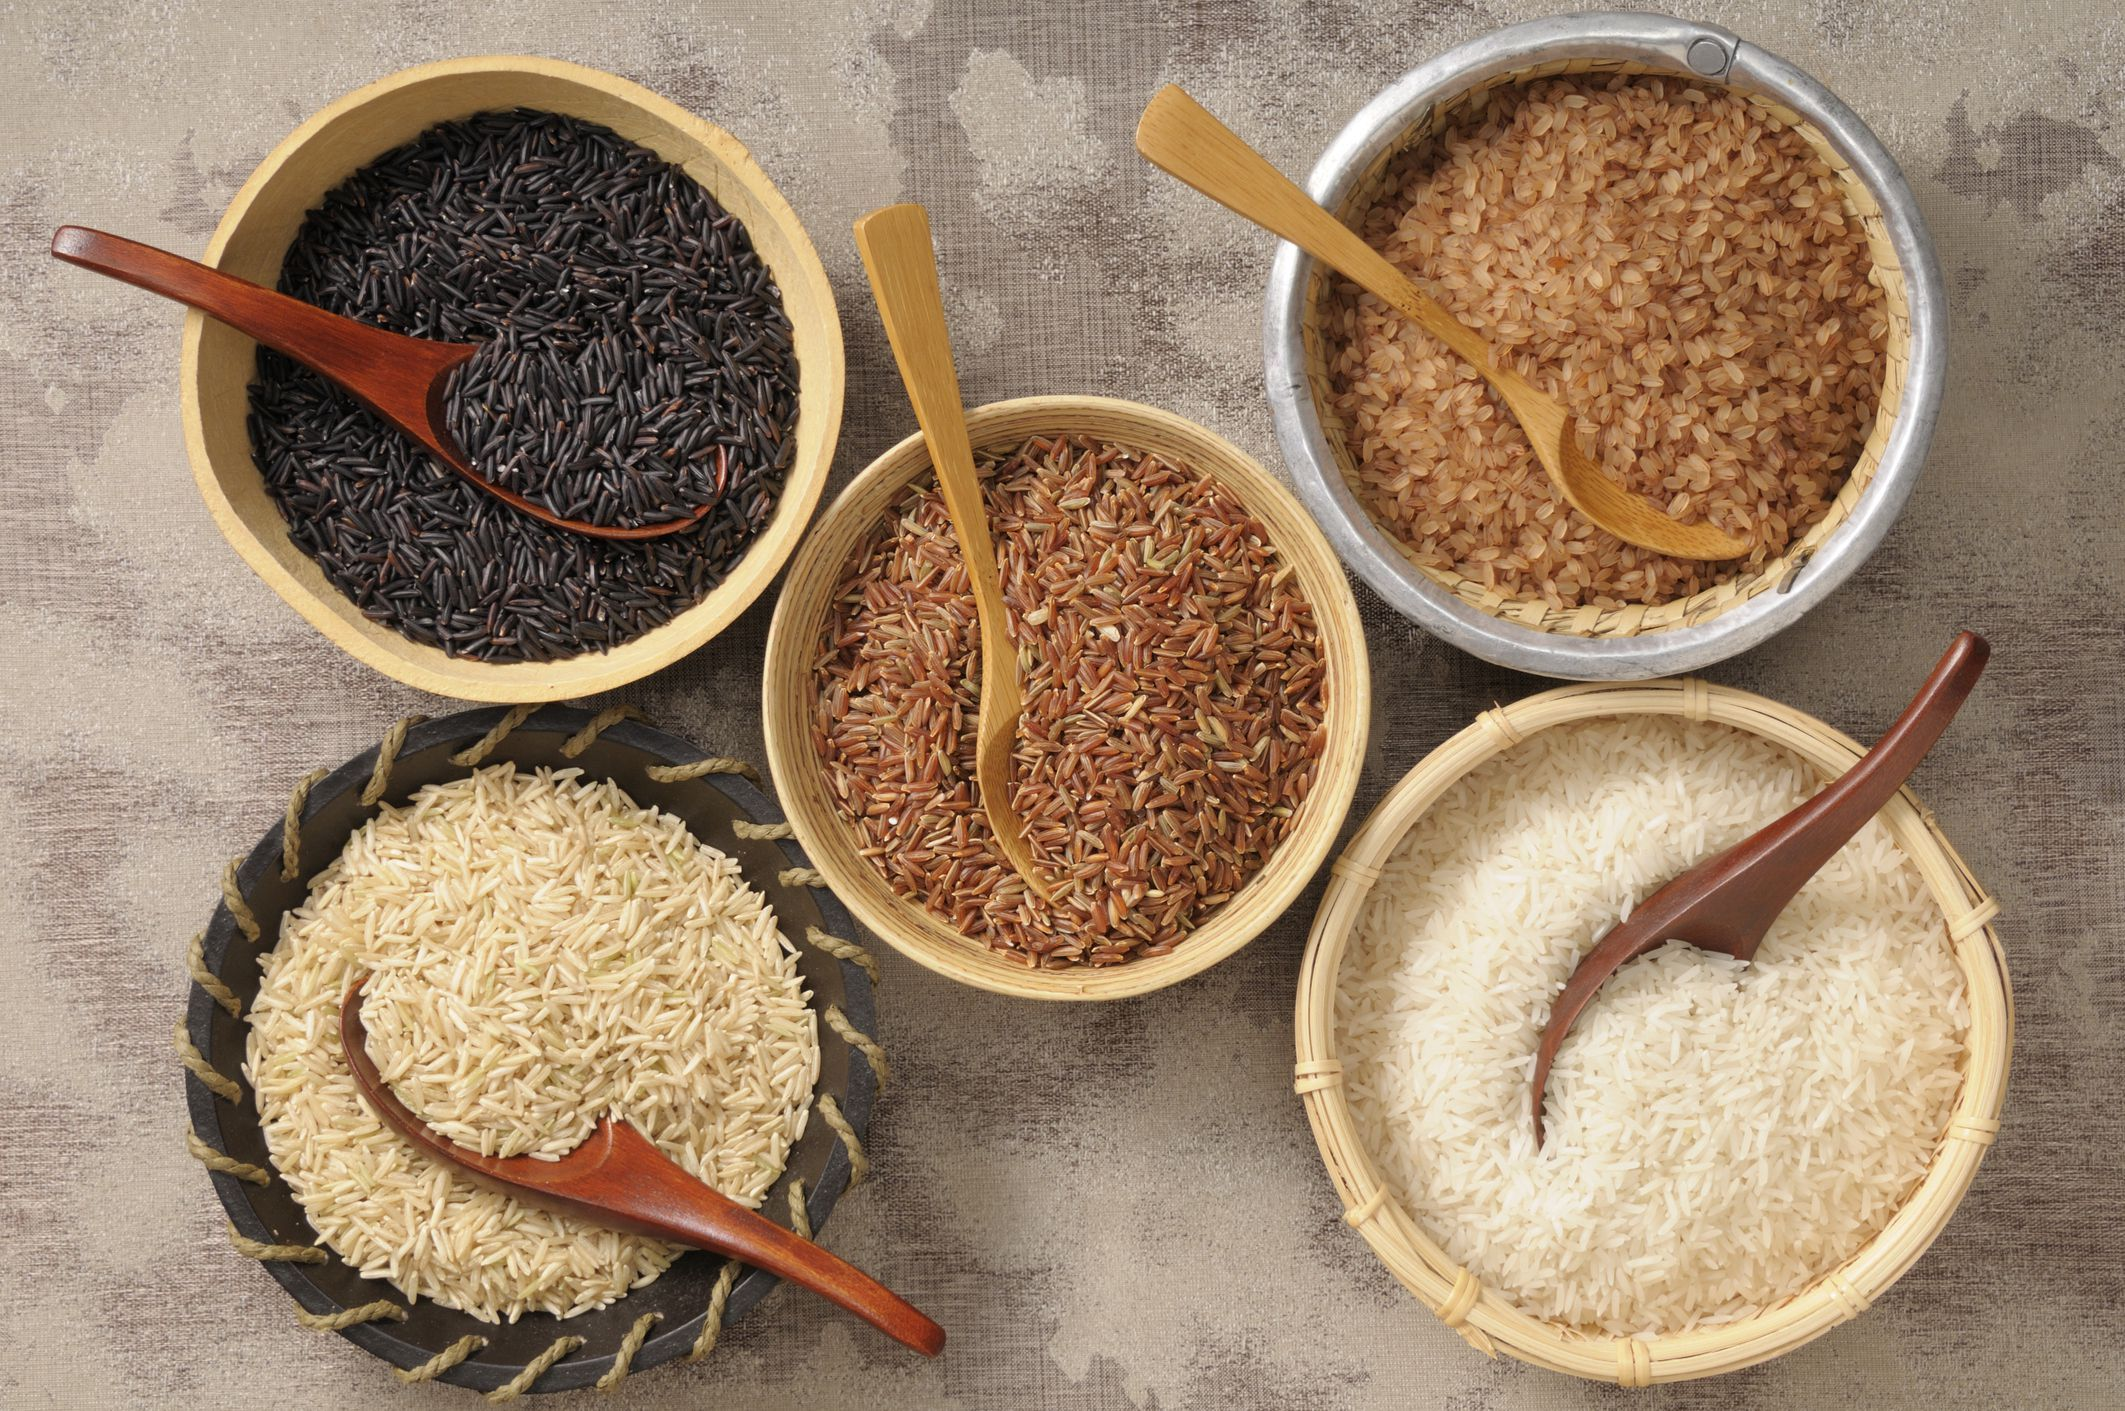 Rice is a starch that is rich in carbohydrates and is a